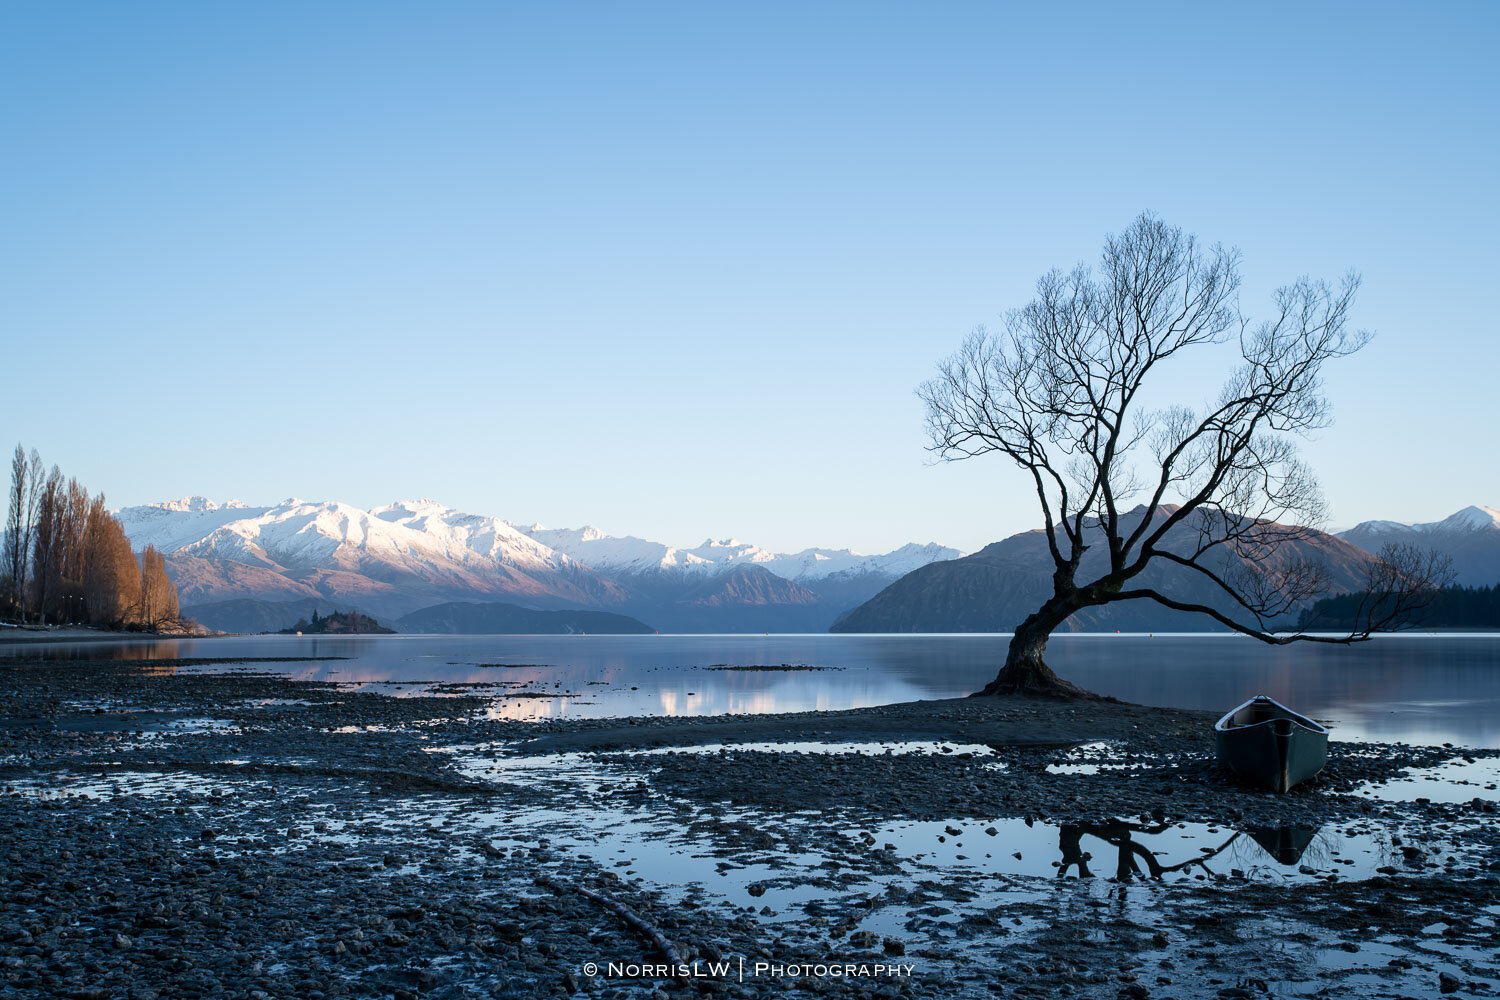 Wanaka_South_Island_NZ-20190907-016.jpg